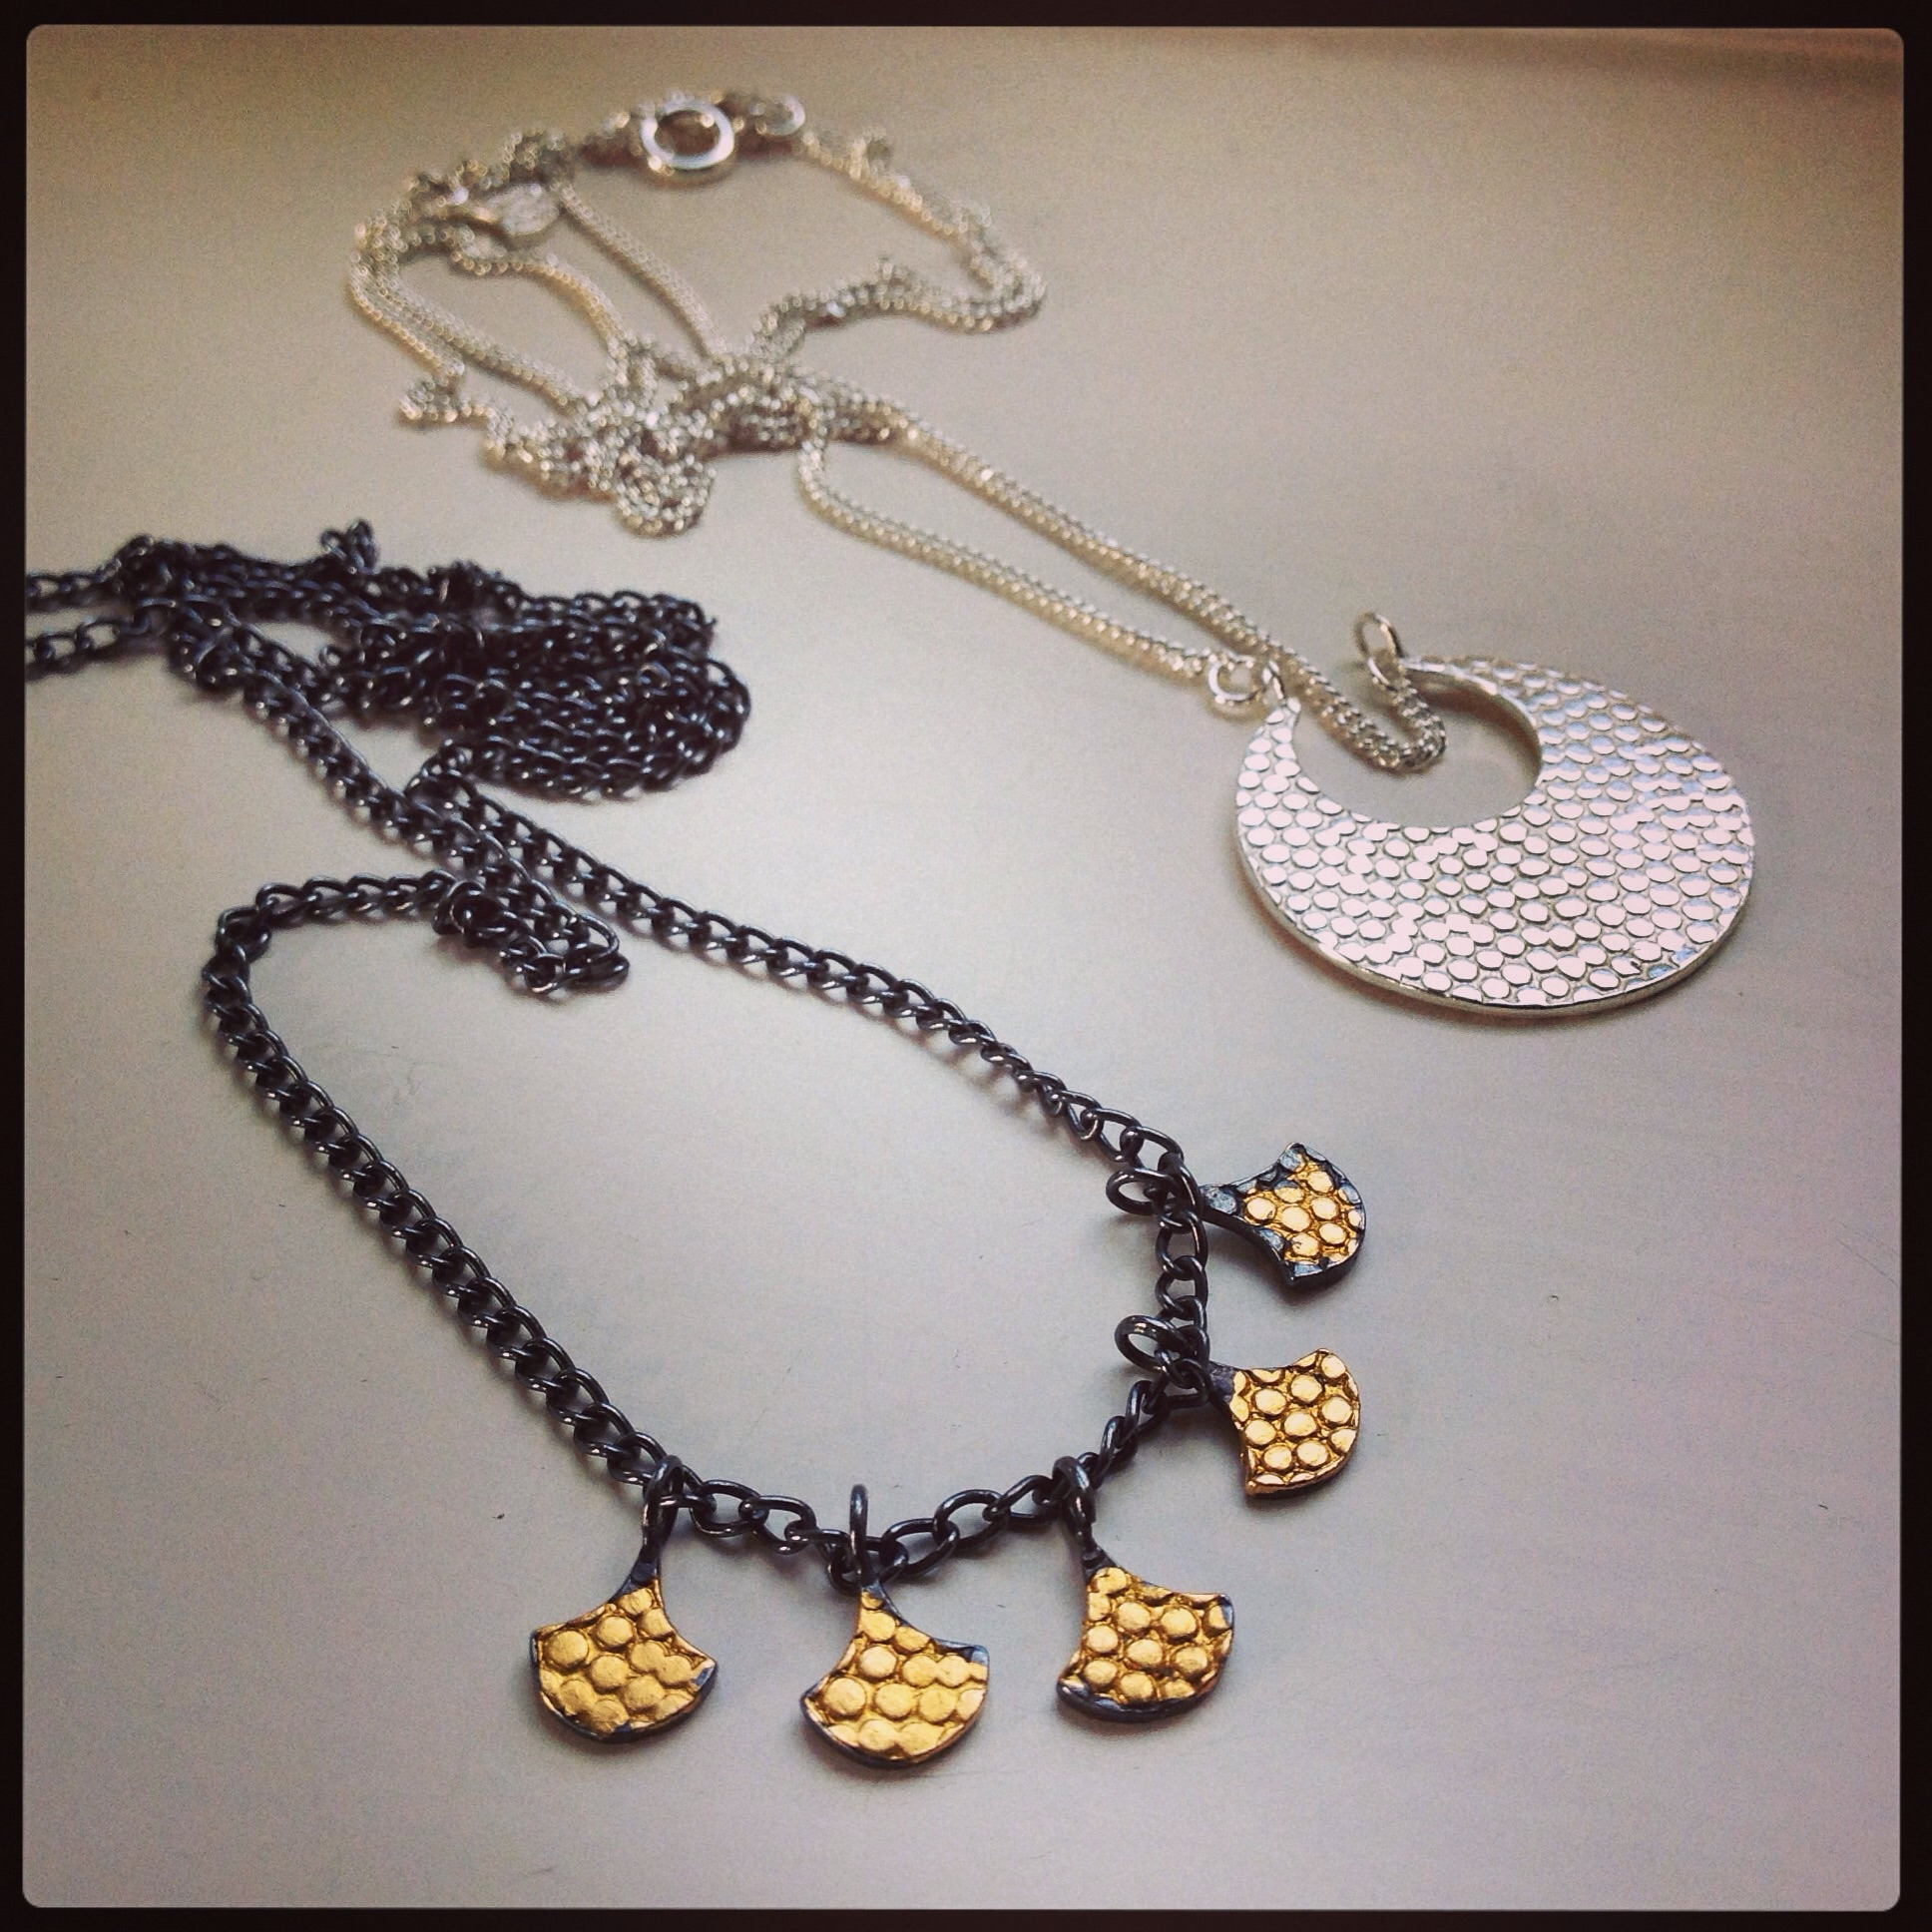 Sophia Hargreaves Jewellery, bespoke black/gold Athena necklace(pictured left) and Athena Silver Pendant (pictured right).